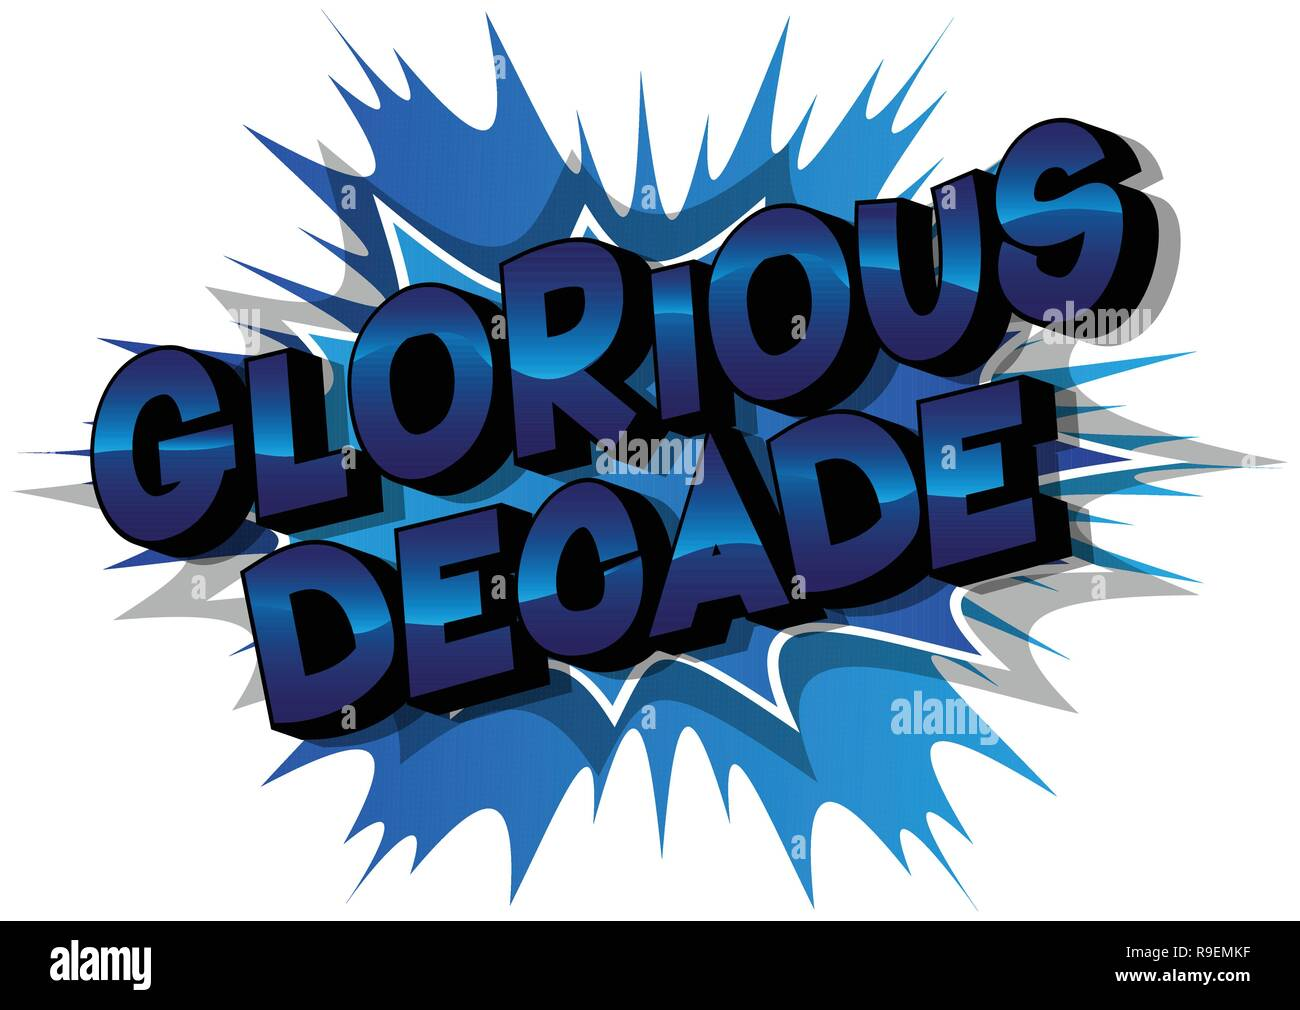 Glorious Decade - Vector illustrated comic book style phrase on abstract background. - Stock Image